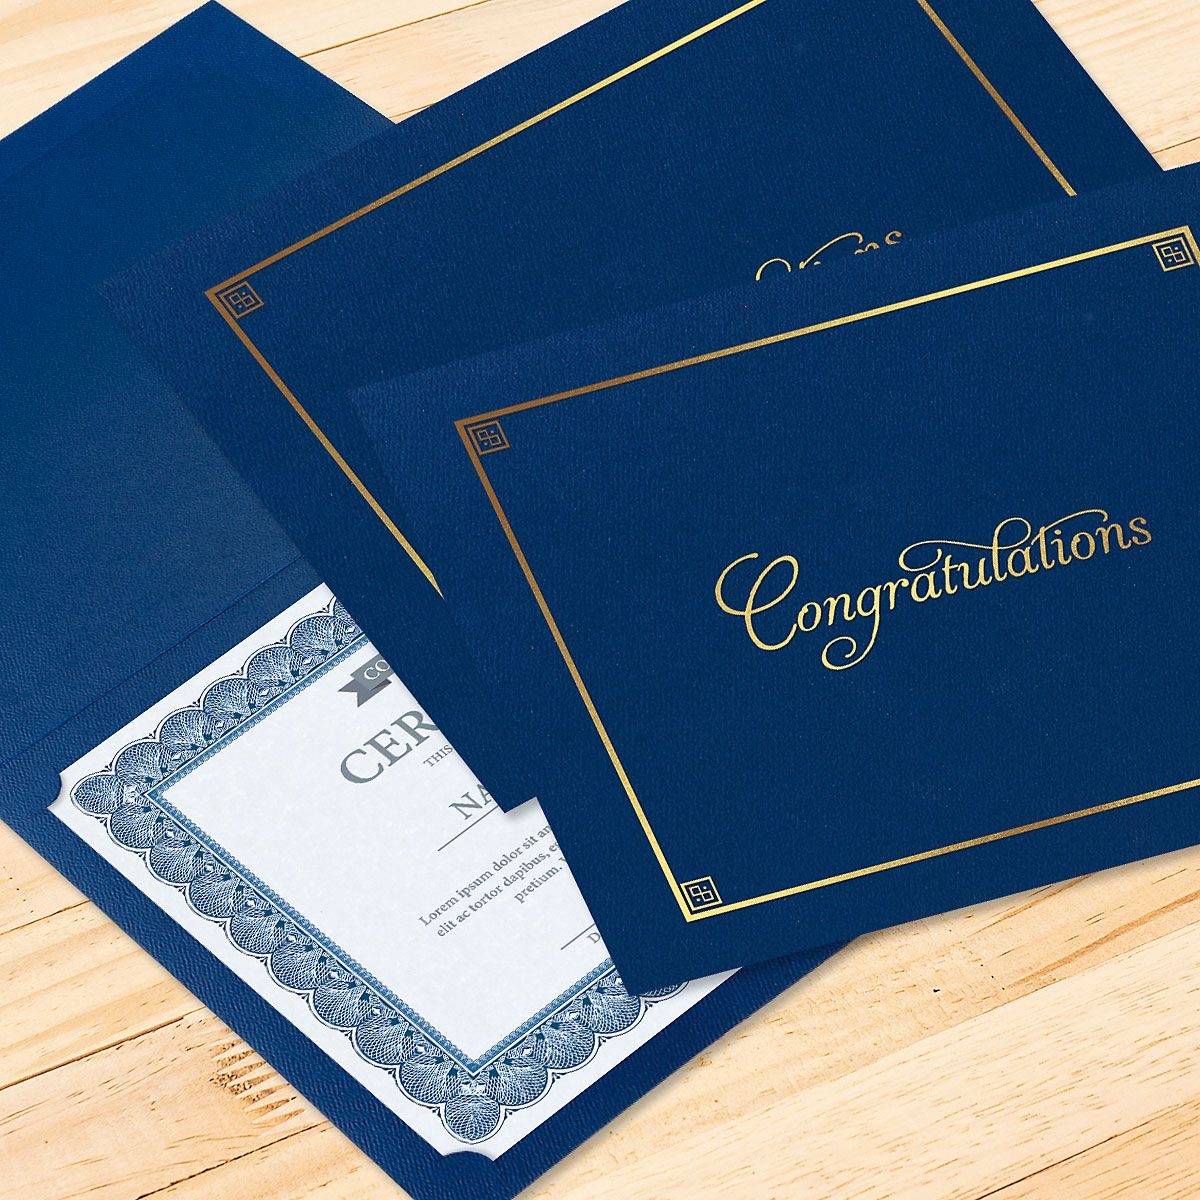 Congratulations Blue Certificate Jacket with Gold Border